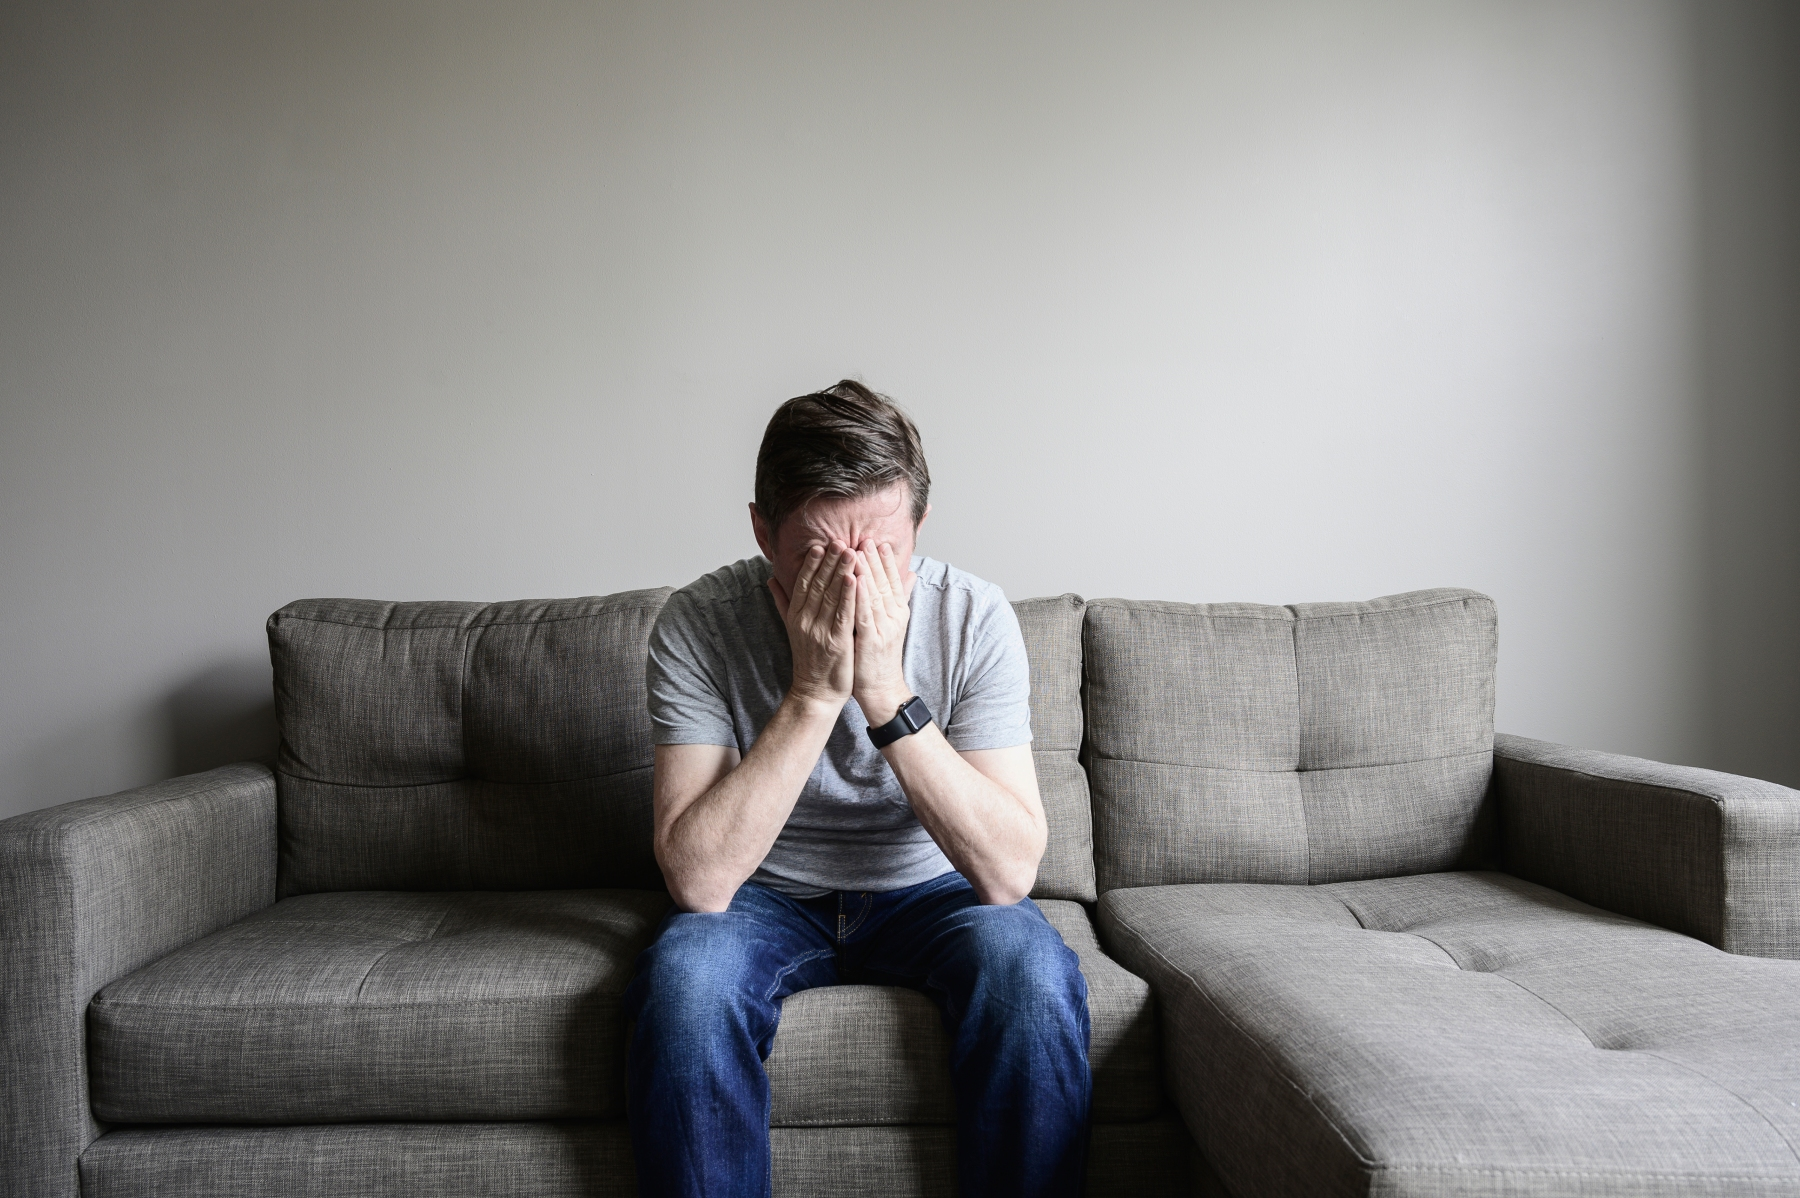 unhappy person sitting on couch in despair